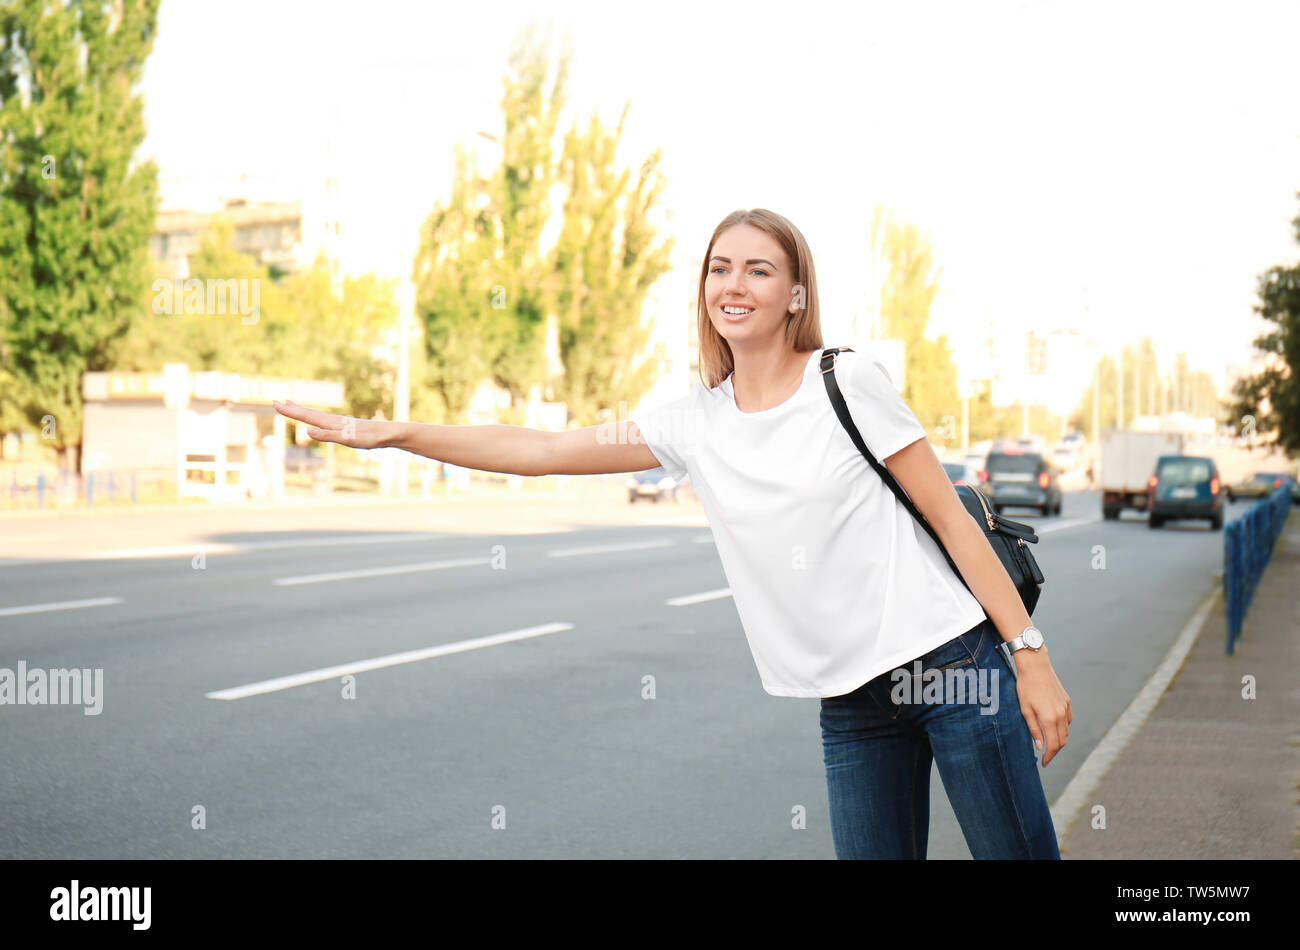 Young woman catching taxi on street - Stock Image